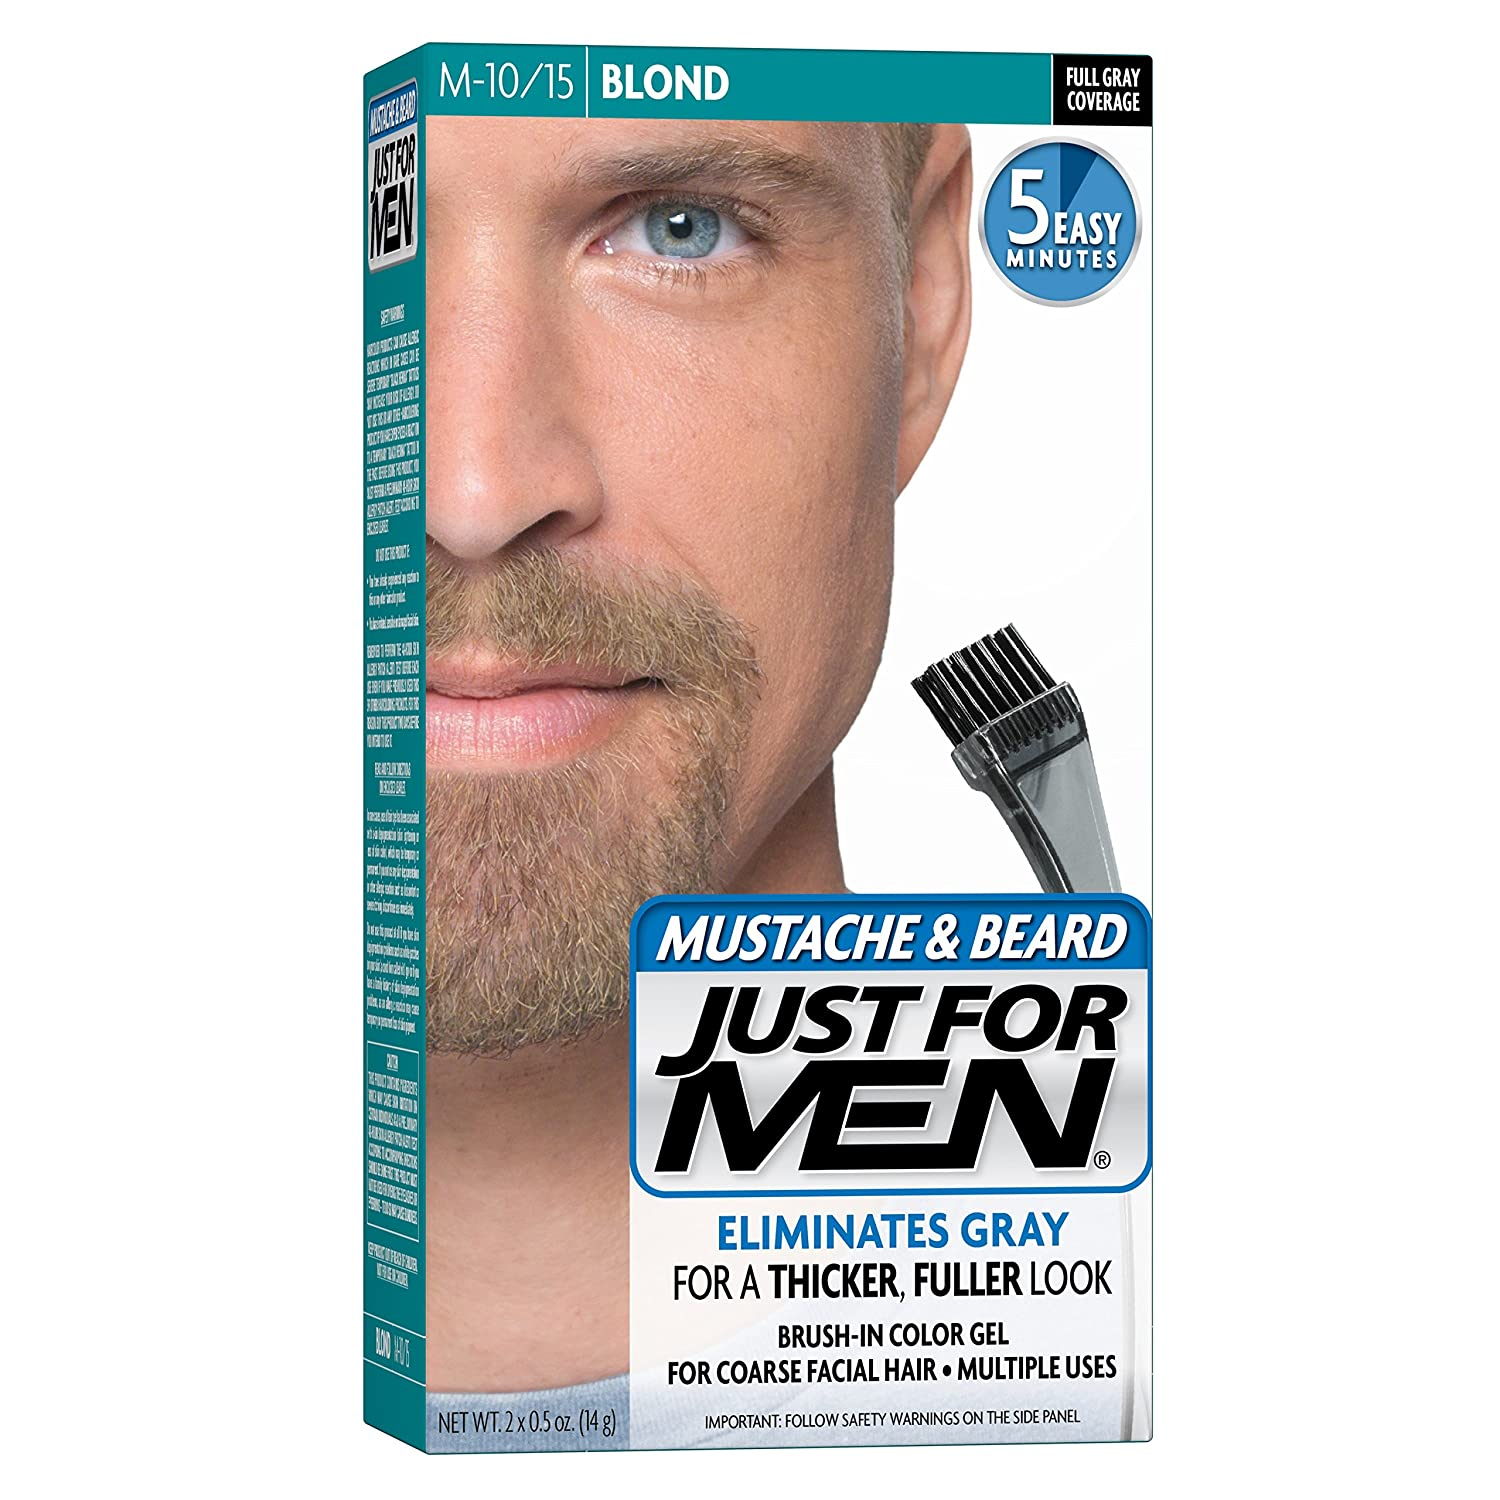 Amazon.com : Just For Men Mustache & Beard, Blond (Pack of 3 ...